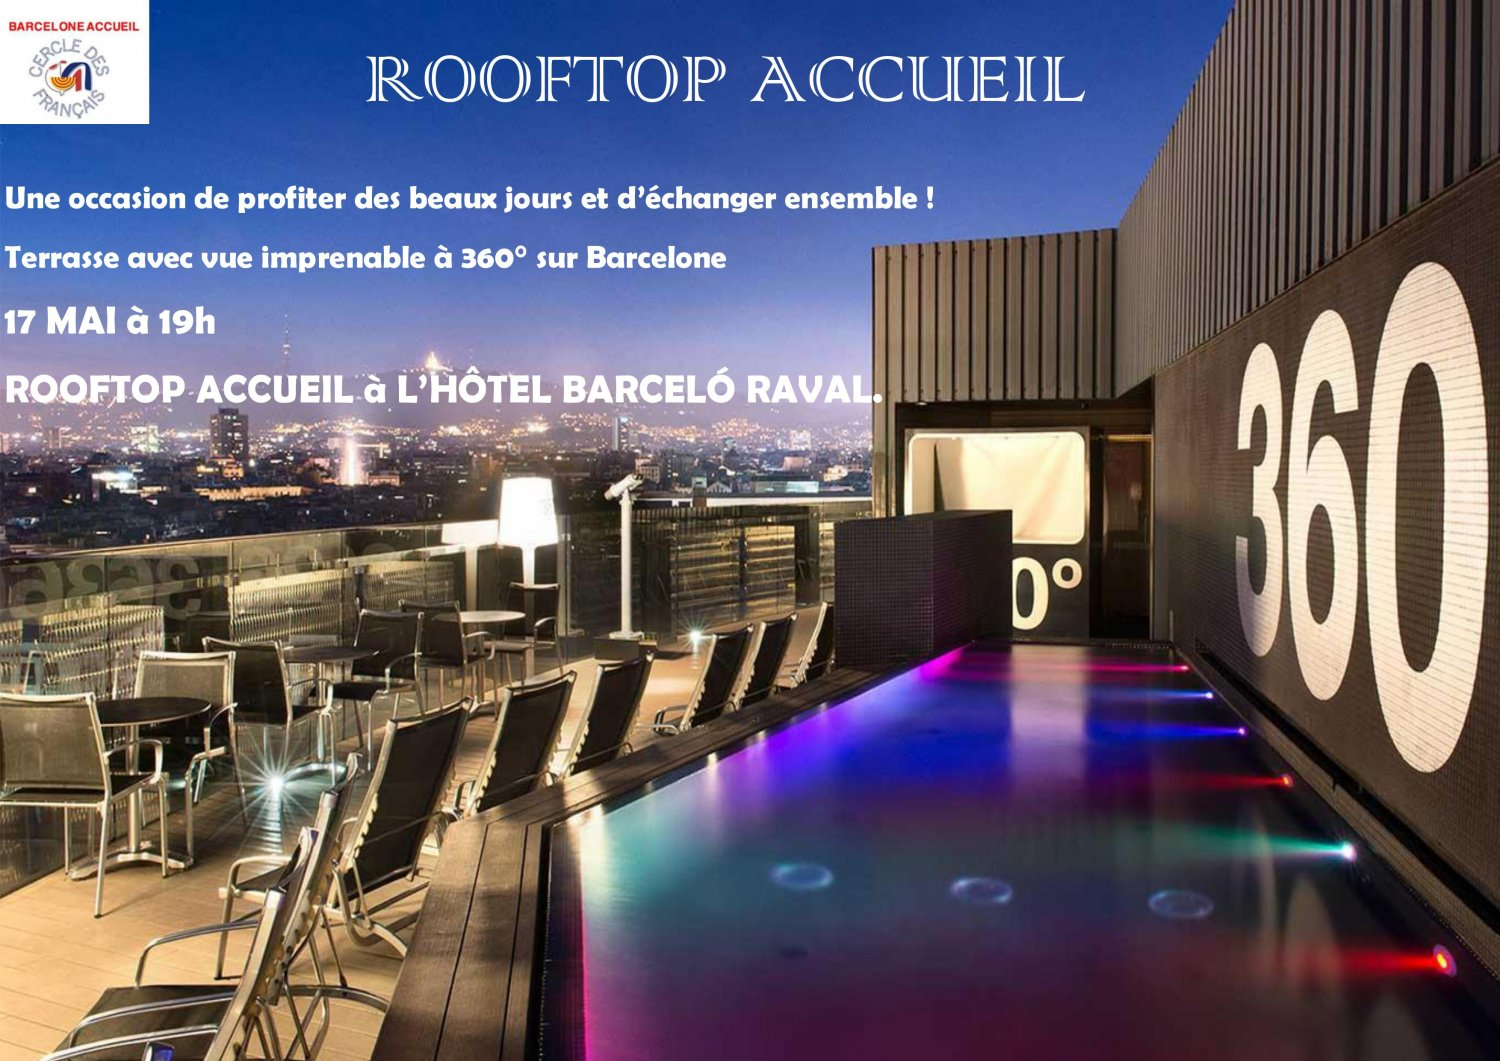 Rooftop Accueil